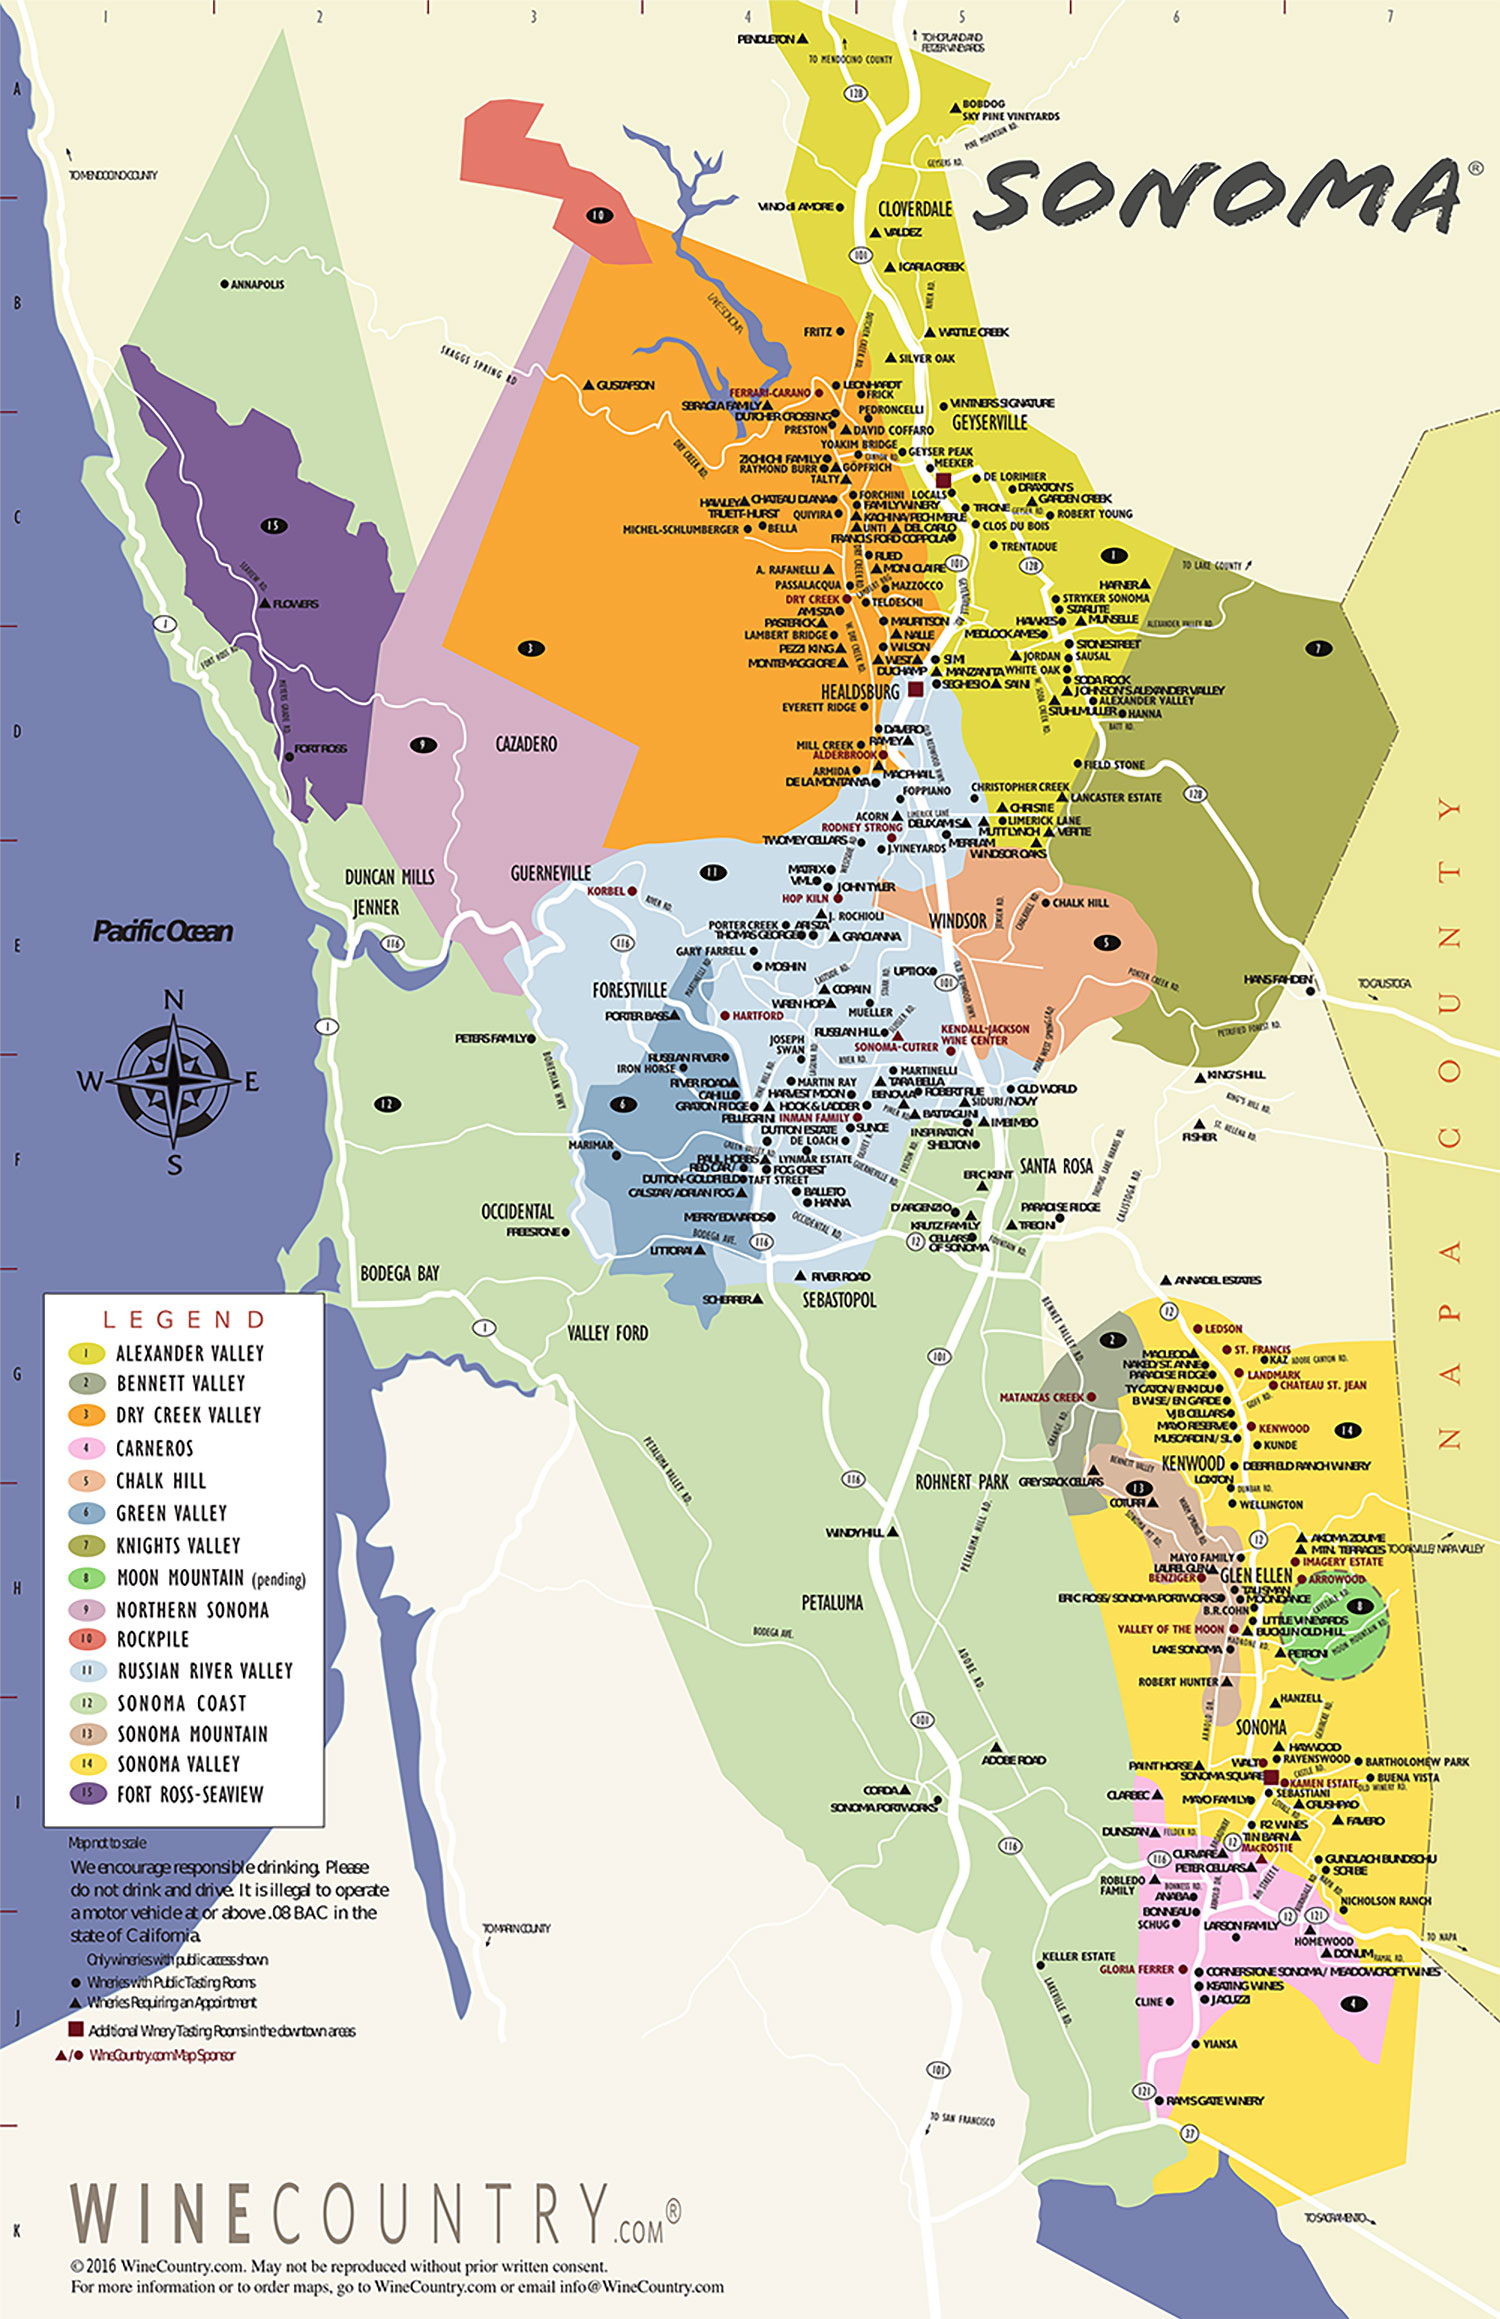 Sonoma County Wine Country Maps - Sonoma.com